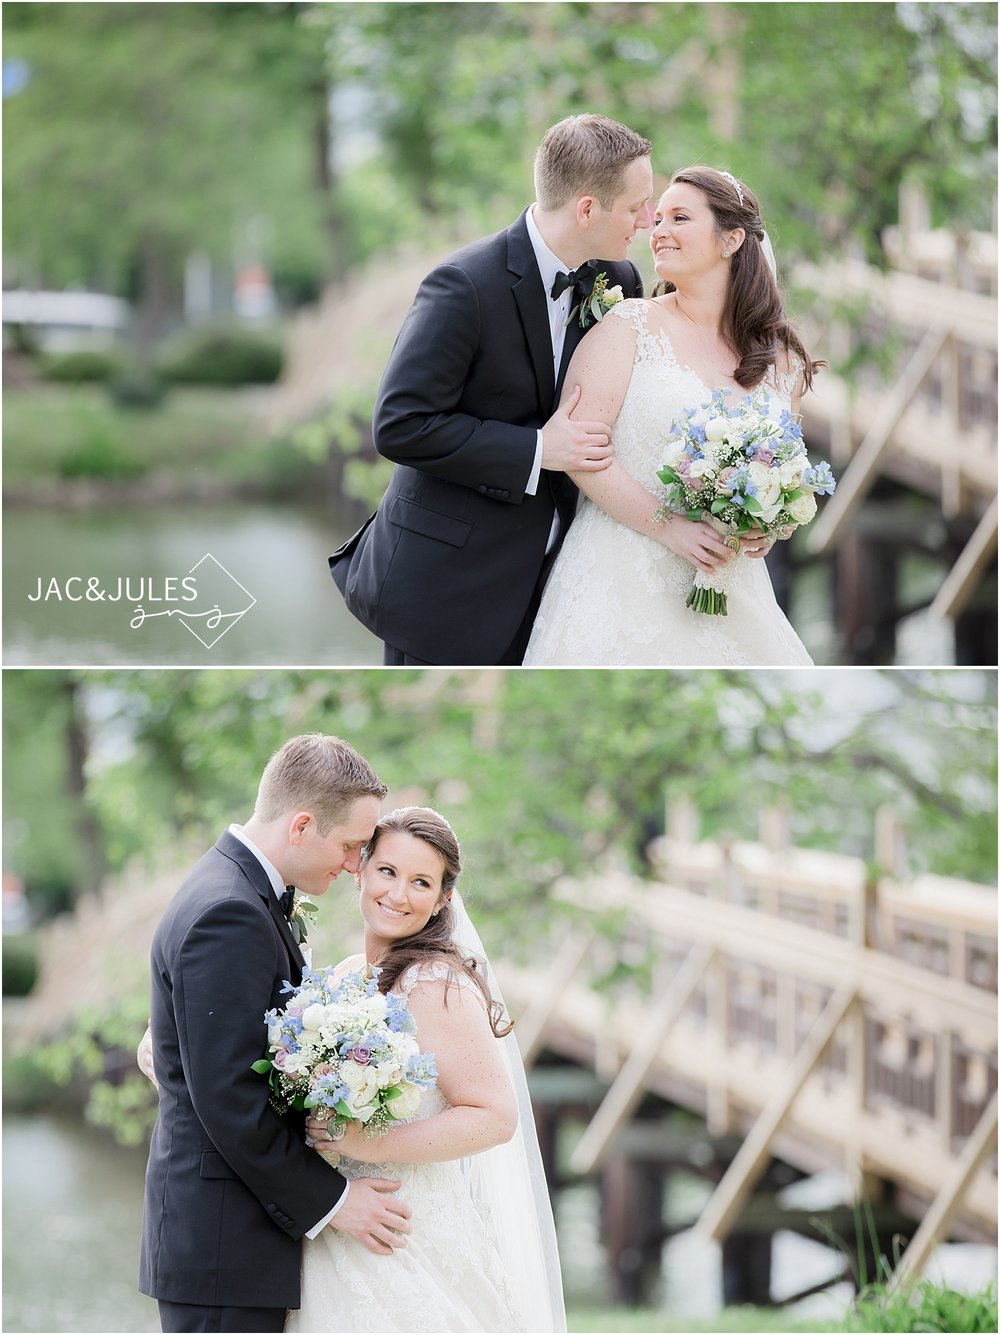 jacnjules photograph wedding at divine park in spring lake nj